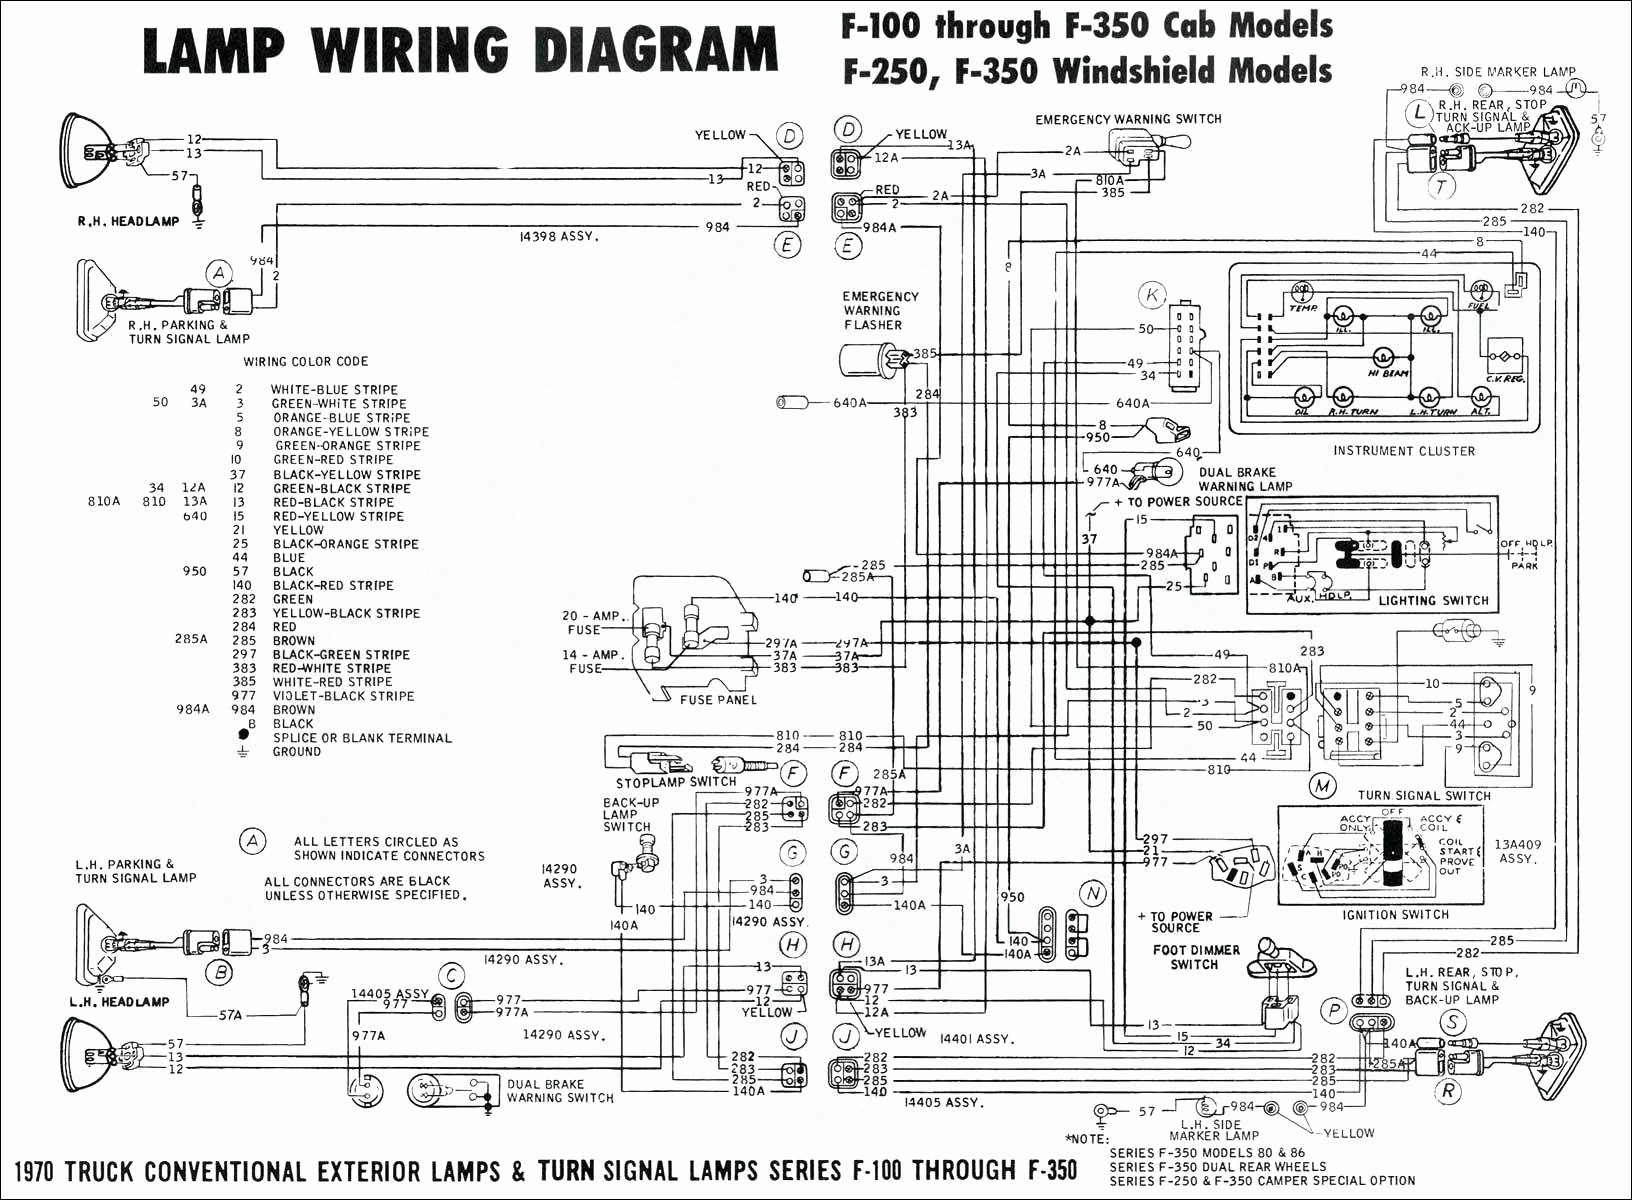 Kib M21vw Micro Monitor Manual Kib Micro Monitor Wiring Diagram 45 123 101 4 98 194an Of Kib M21vw Micro Monitor Manual